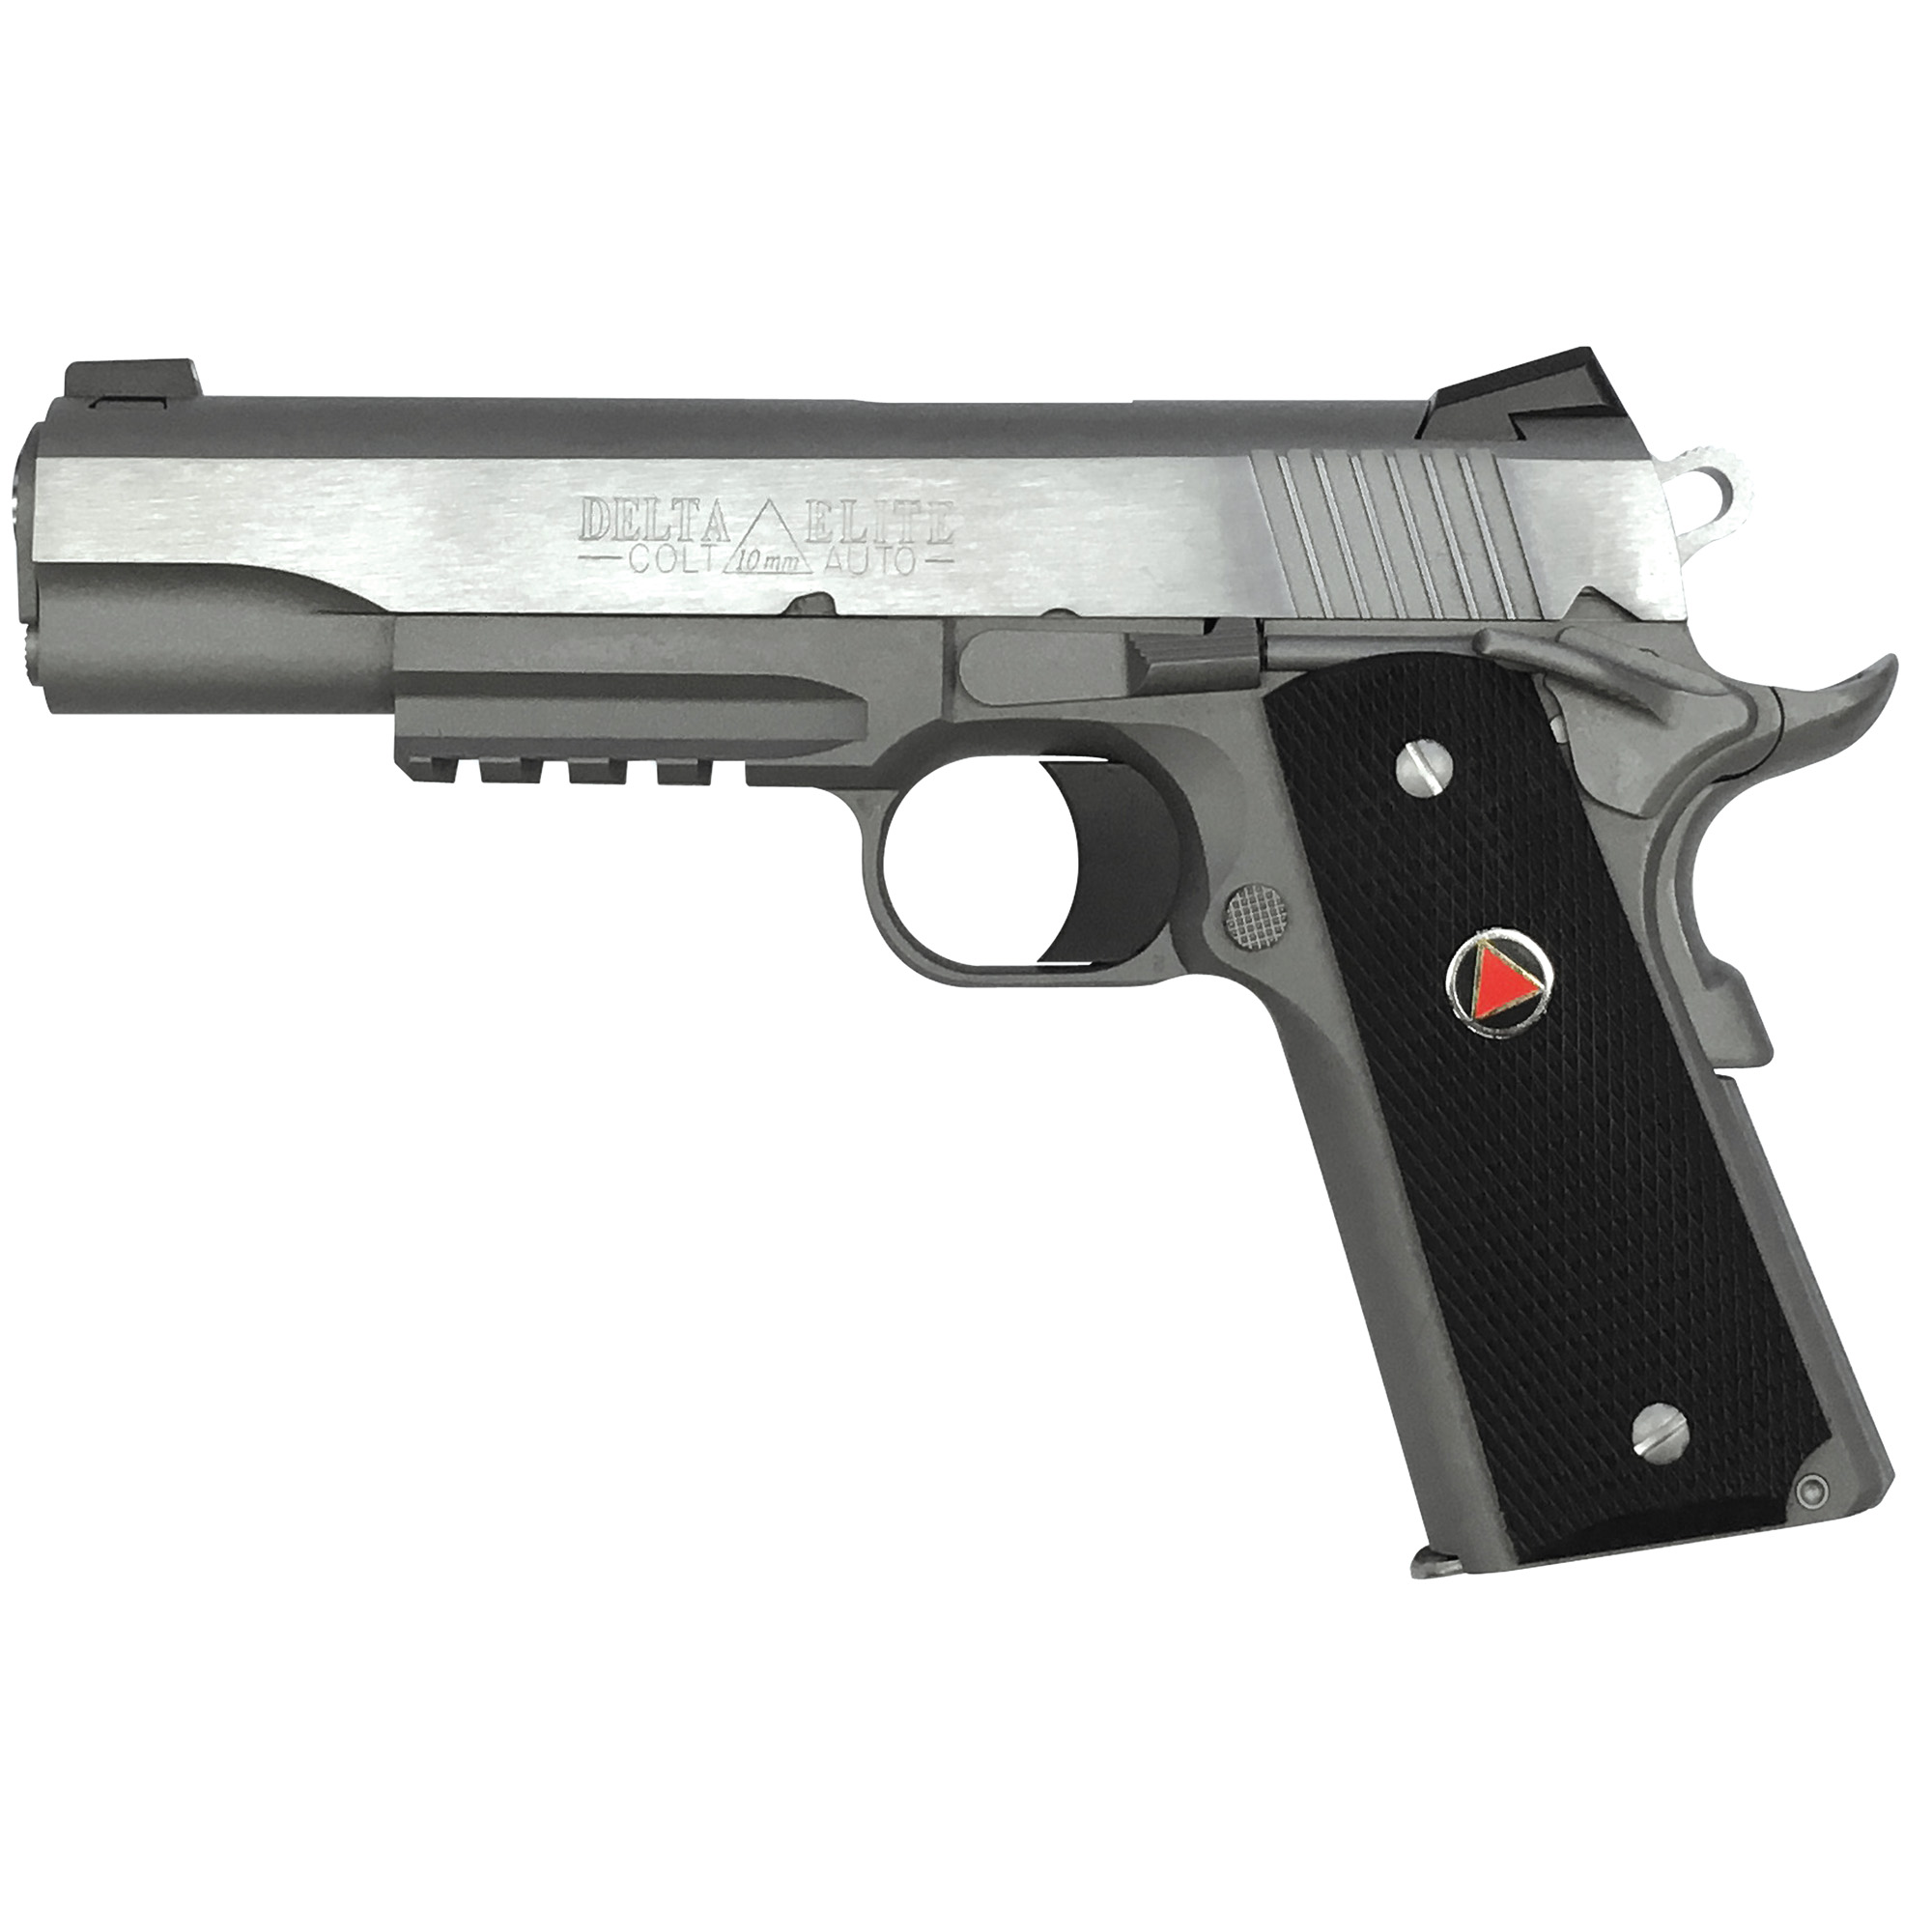 Colt's venerable Delta Elite(R) 10mm 1911 is now available as a Rail Gun(R). Colt kept interest in the powerful 10mm round alive with the release of the Delta Elite(R) back in the 1980's. Now hunters and advanced security operatives have the opportunity to take advantage of their favorite rail mounted pistol light without giving up what makes a Colt 1911 special.